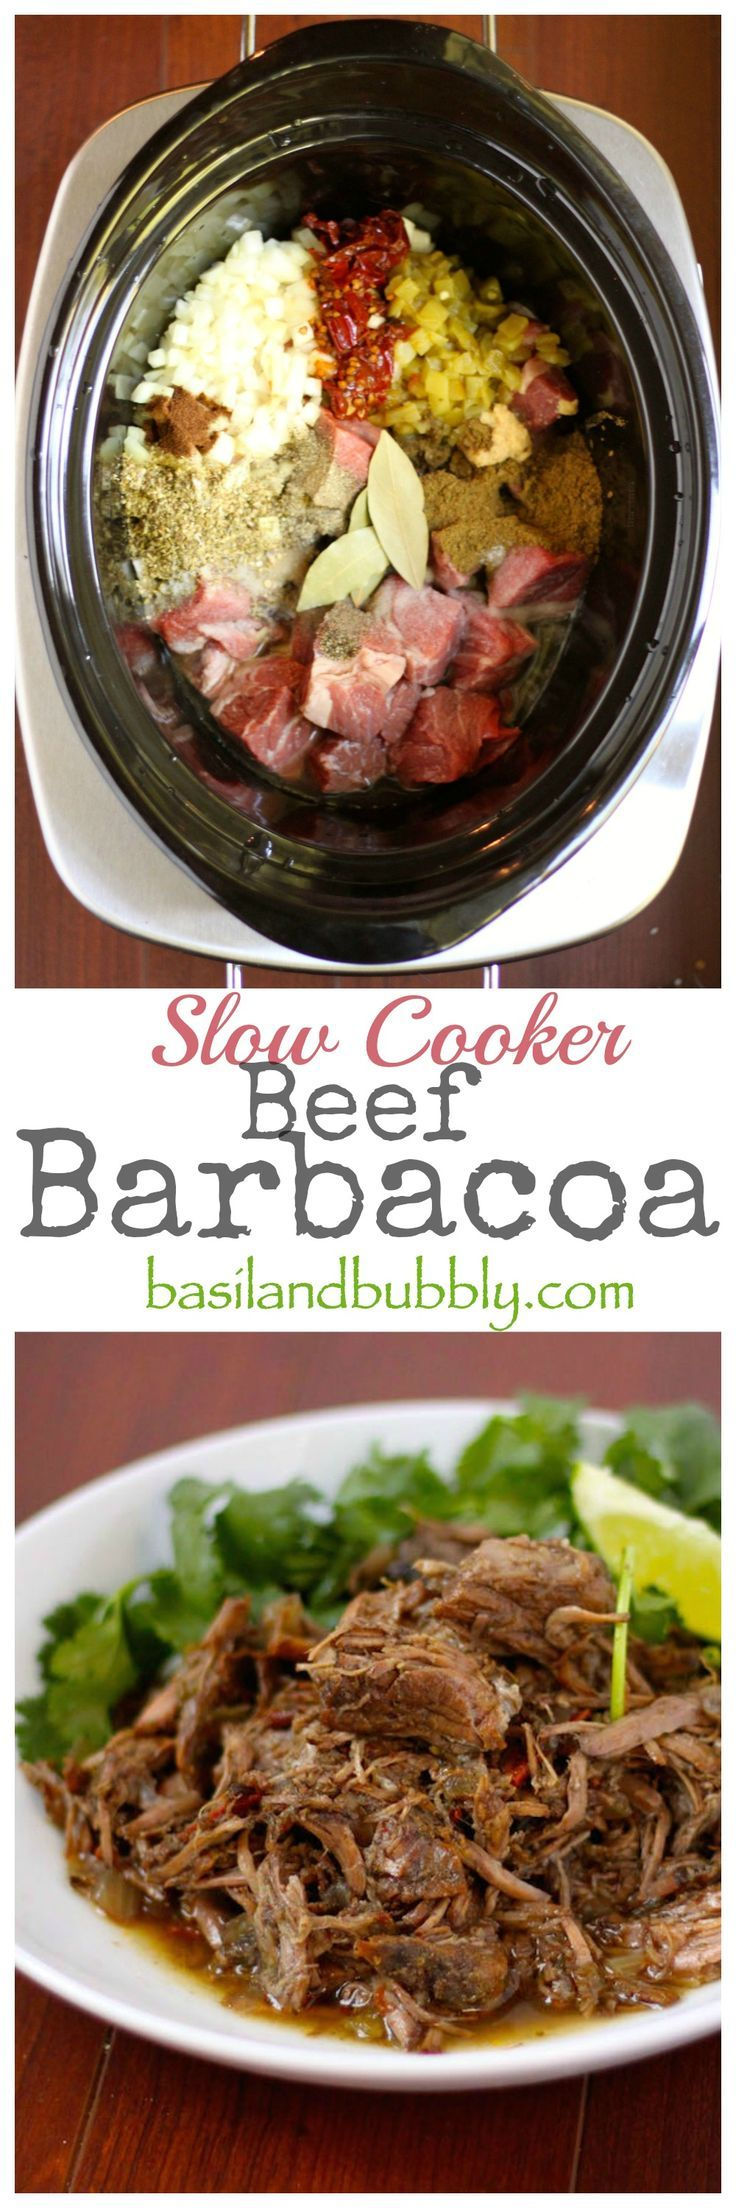 5 minutes of prep, and all day of stress-free slow cooking makes THE MOST tender, juicy shredded beef barbacoa for your tacos and salads!